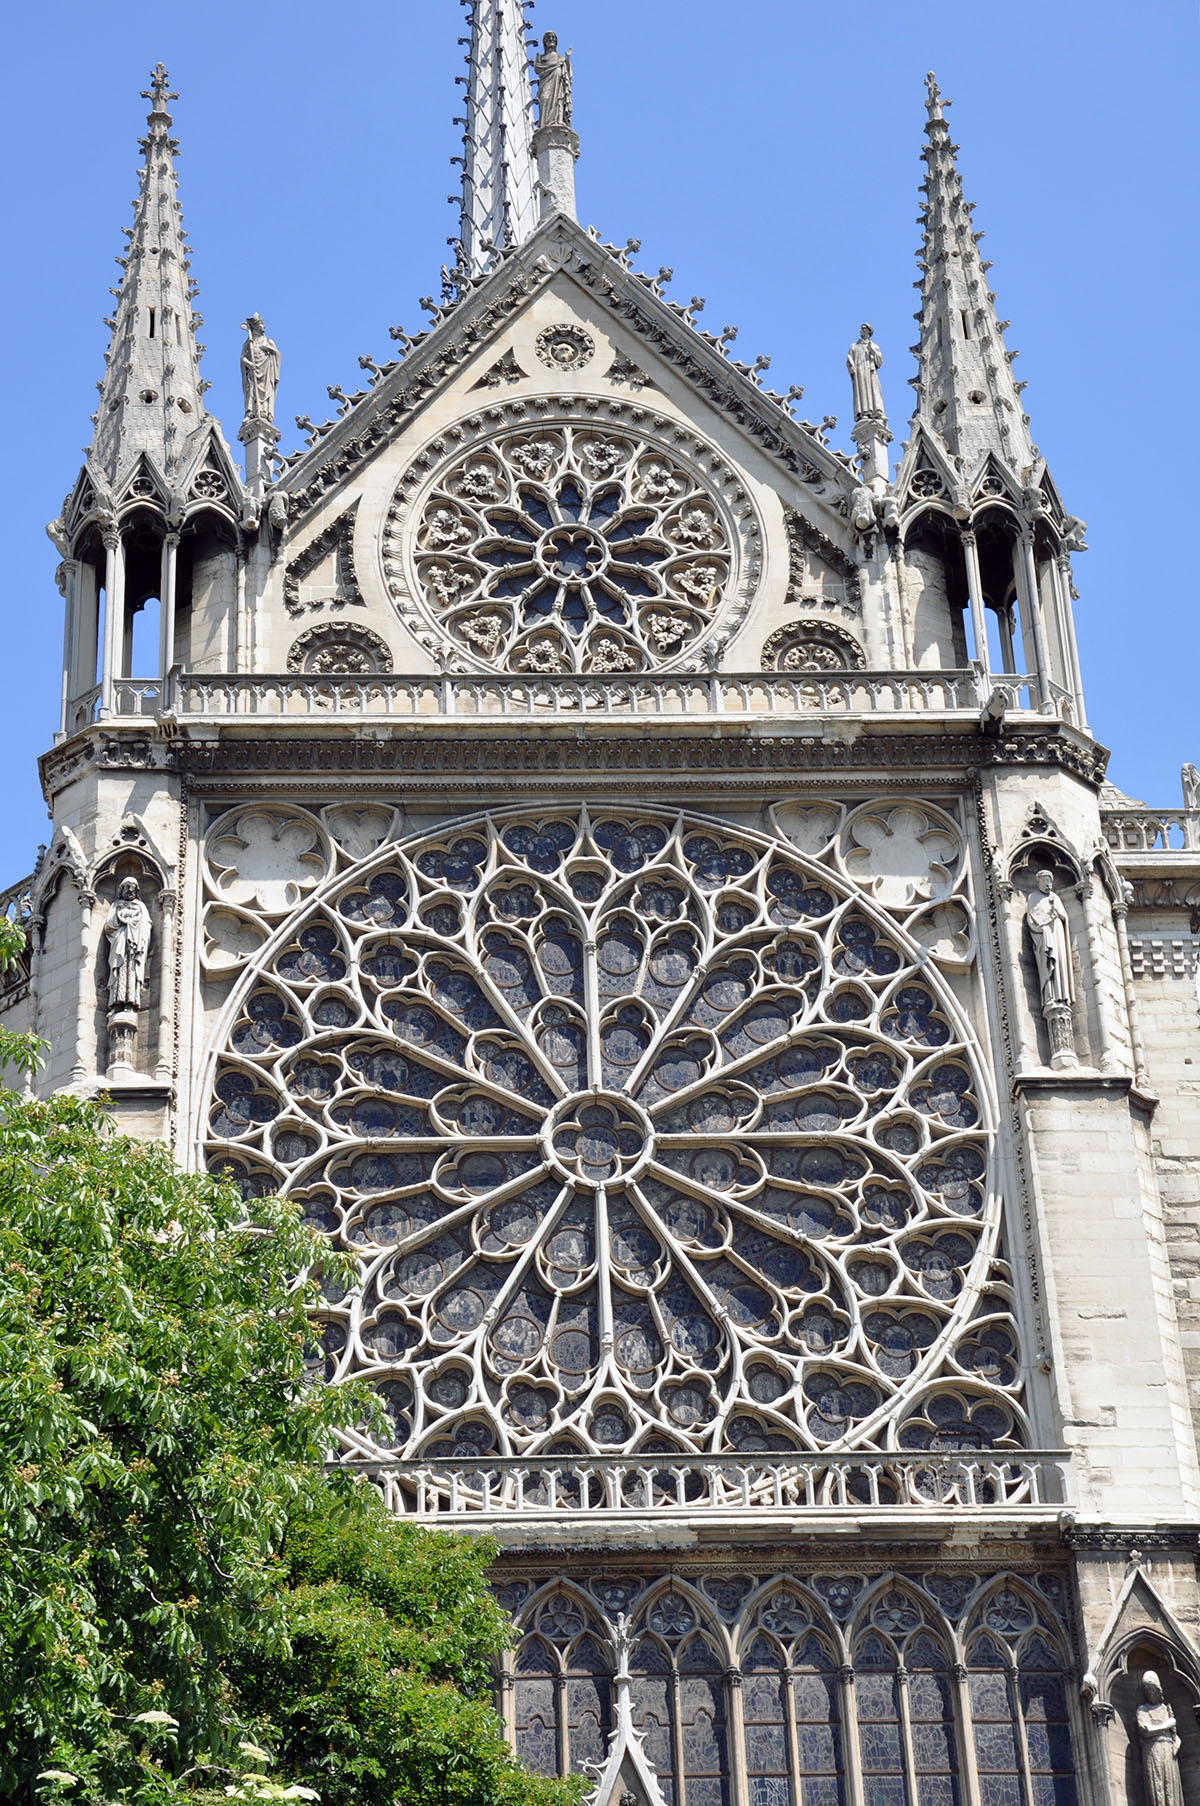 Notre Dame Cathedral rose window detail June 2010 photo by Bob Borson